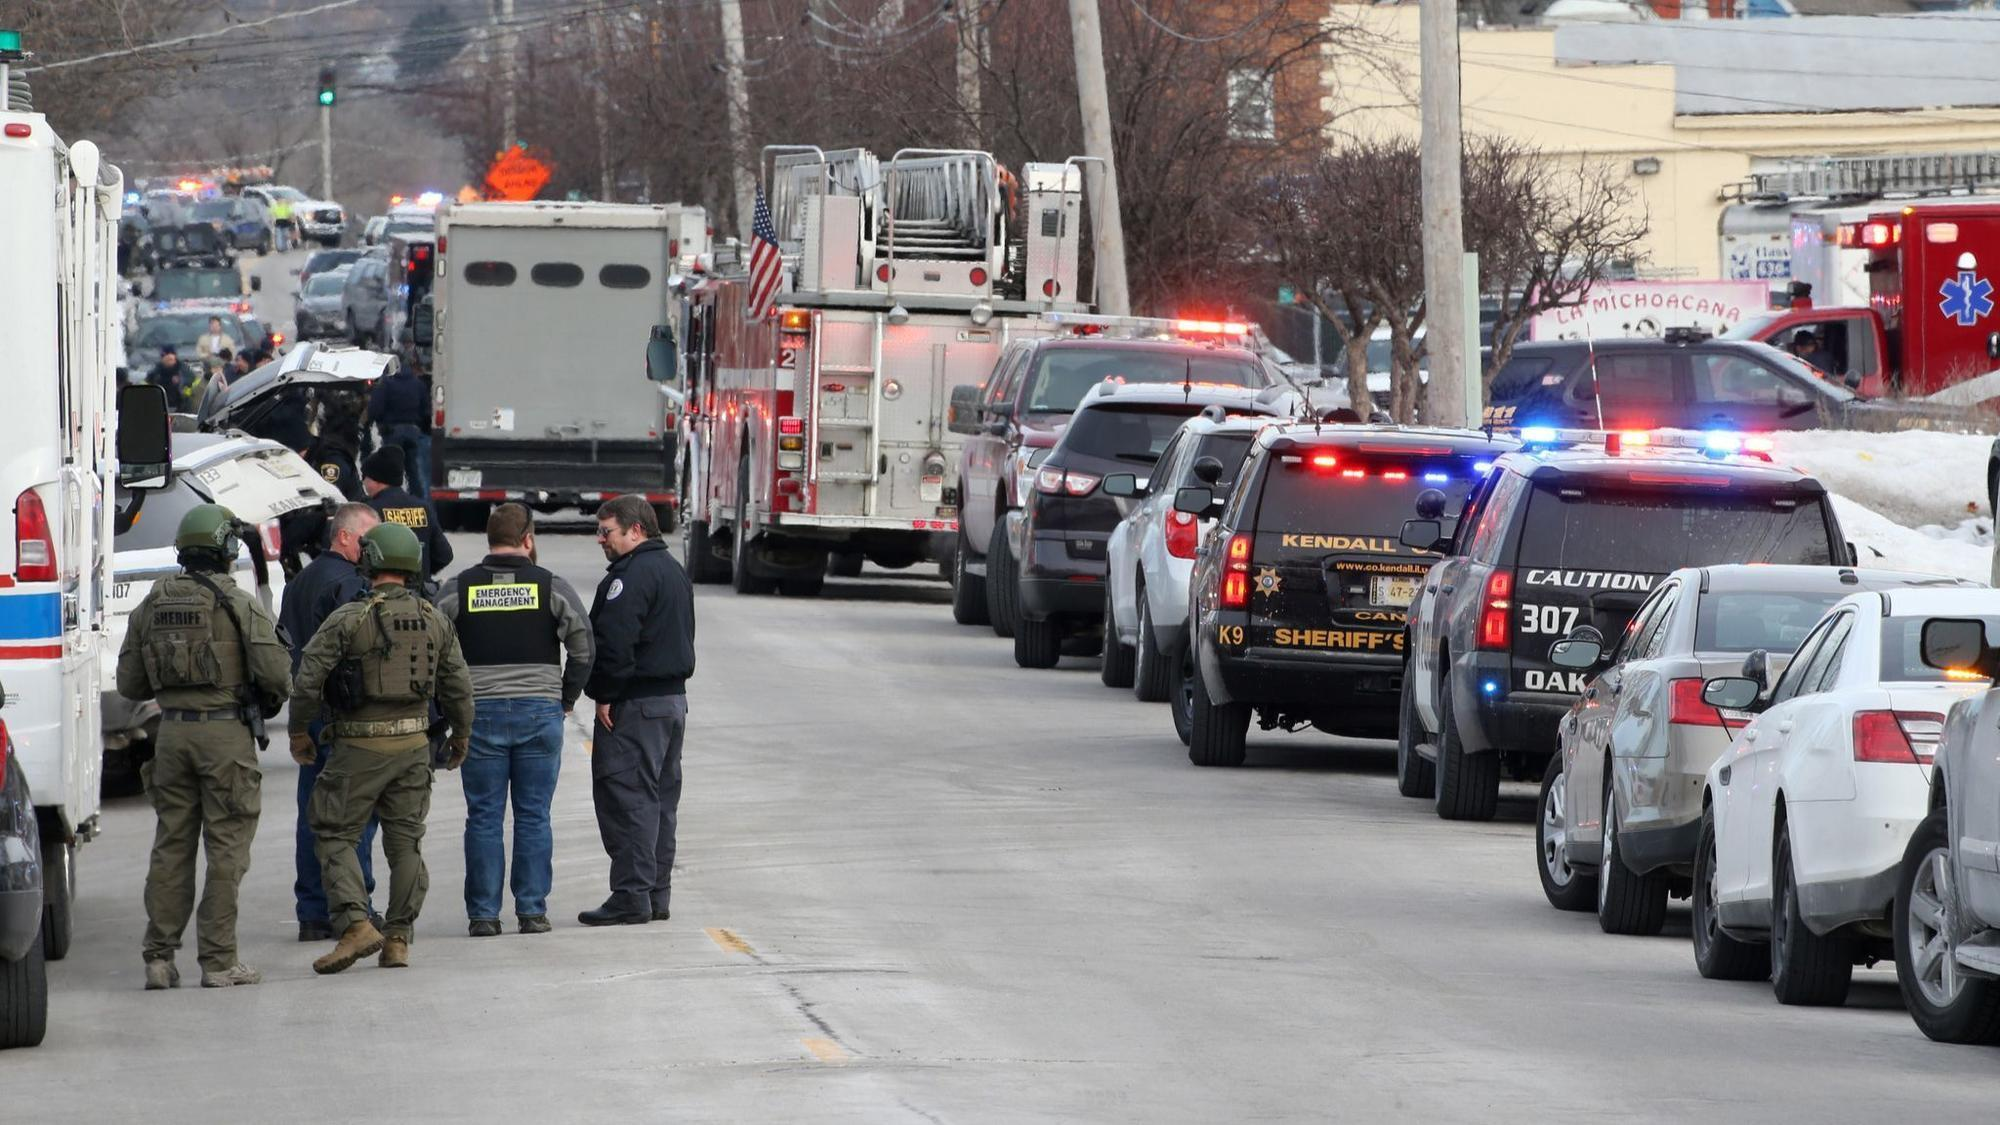 Aurora police release dispatch, 911 audio from mass shooting